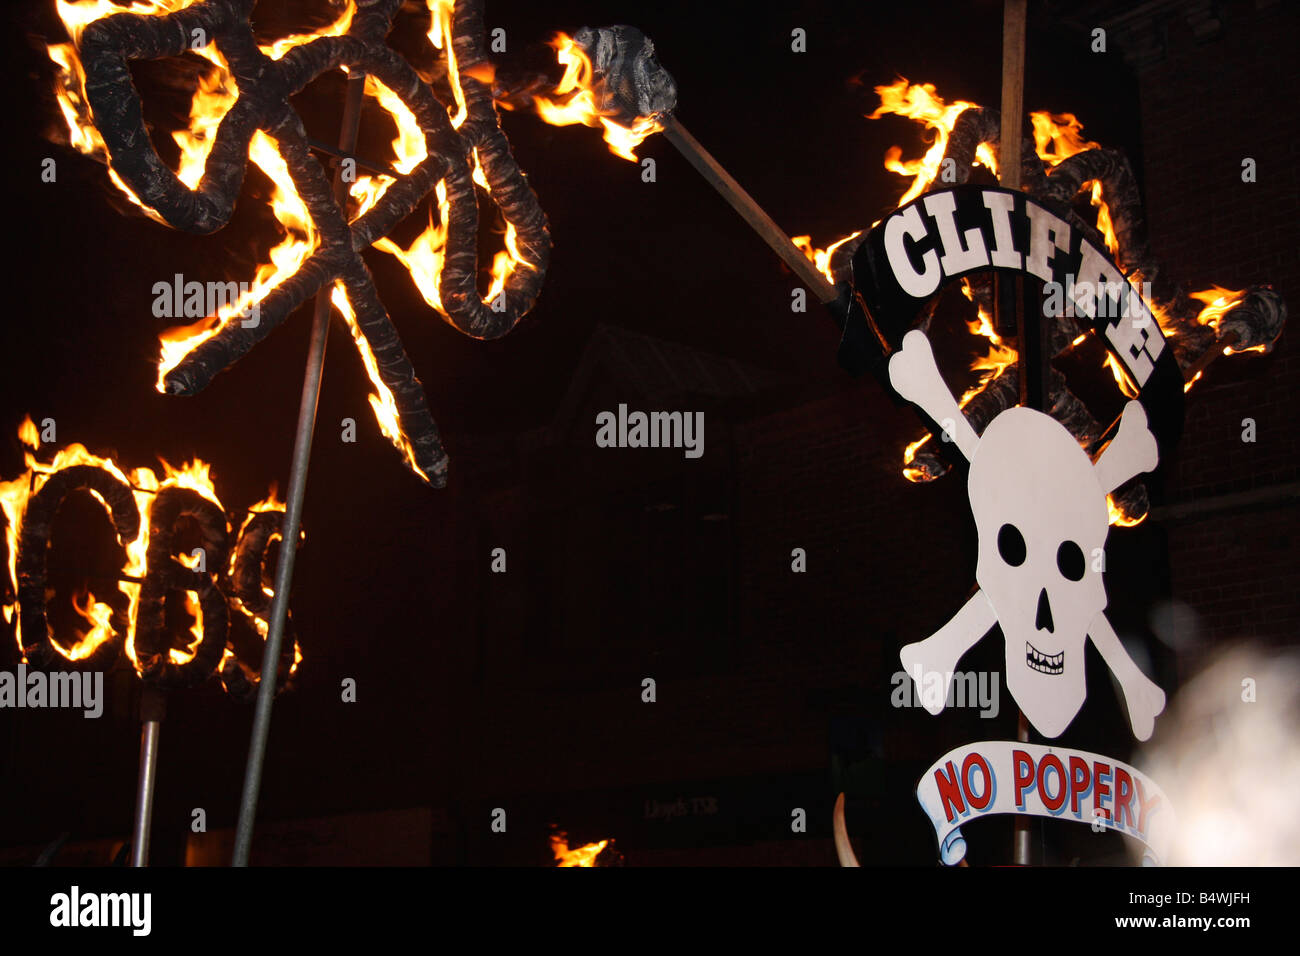 CLIFFE BONFIRE SOCIETY GUY FAWKES SIGN LEWES FIREWORKS - Stock Image